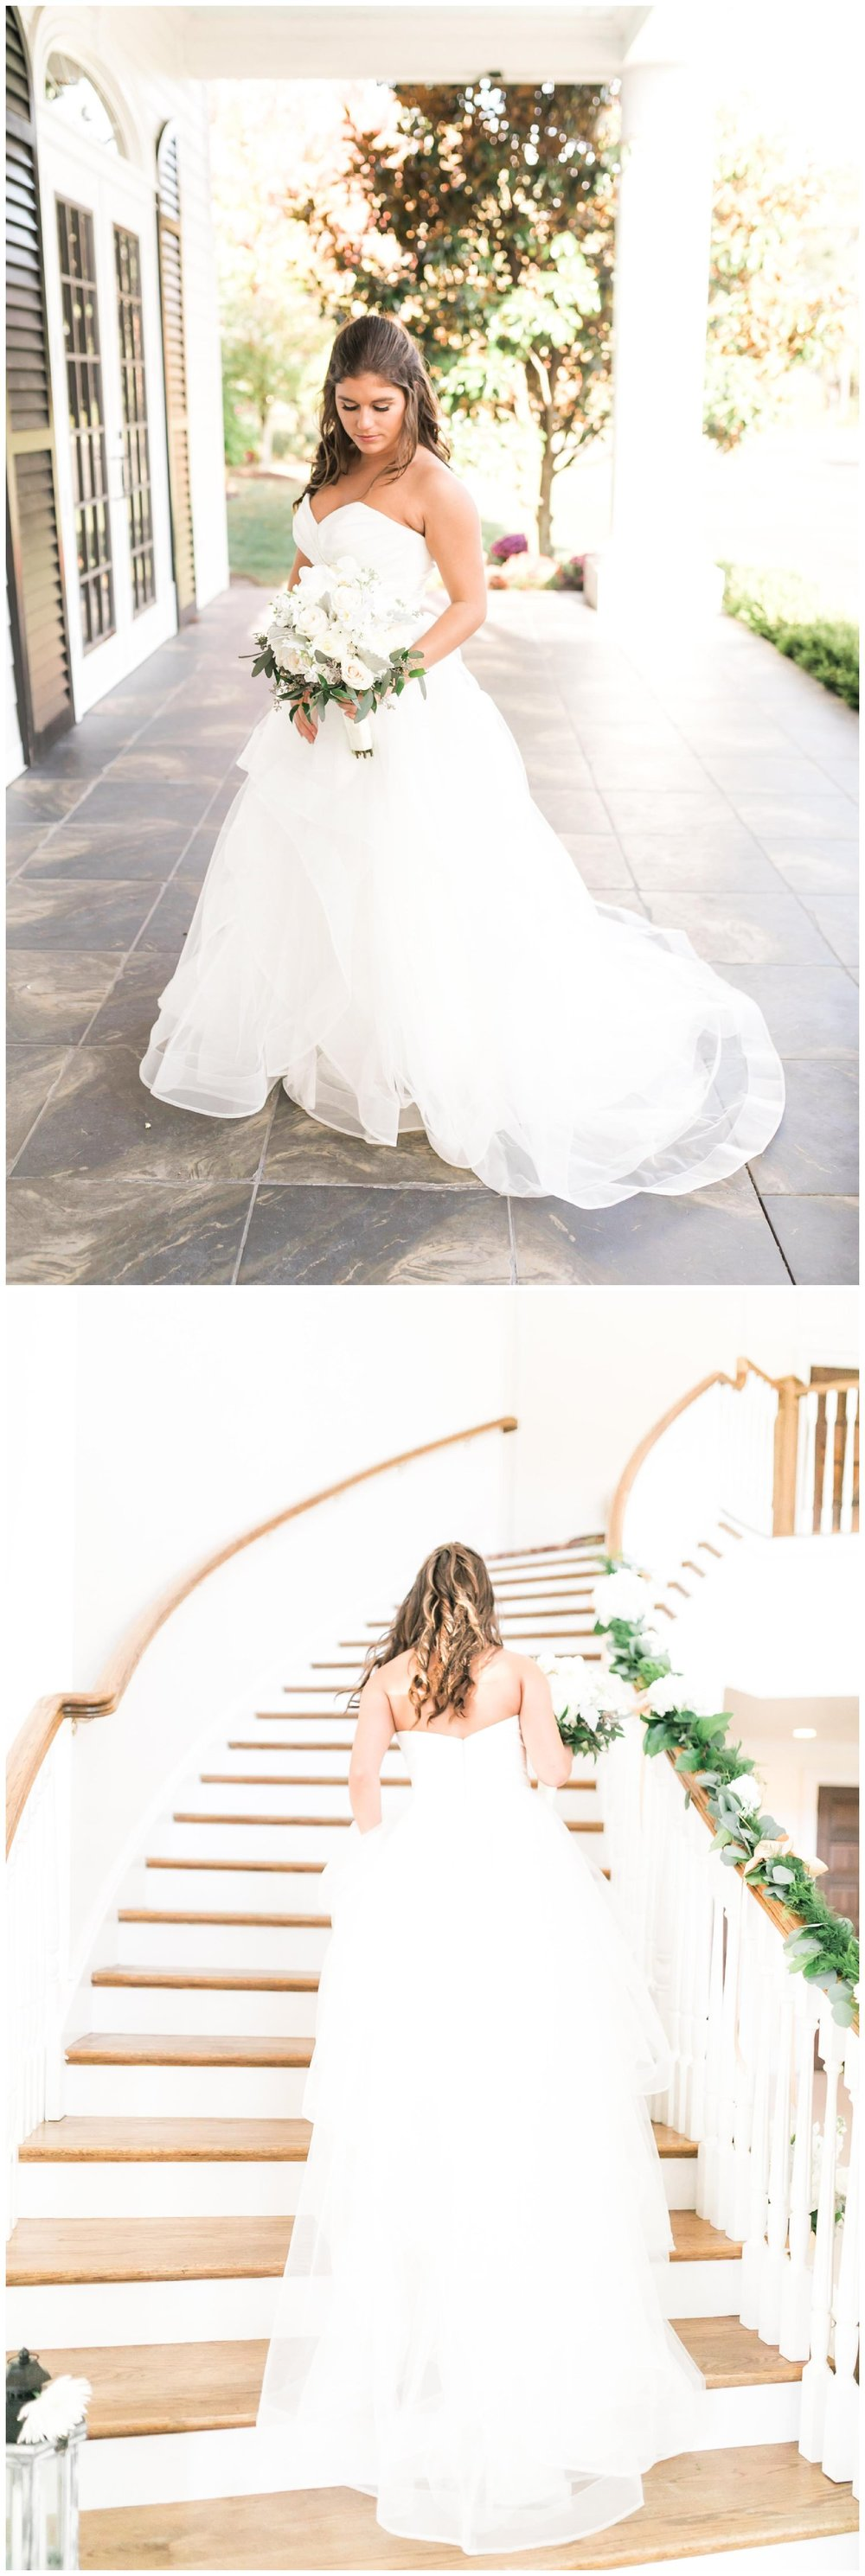 JenandEd_NewJerseyWedding_CarriageHouse_Galloway_NJ__SouthJersey_Wedding_Photographer_MagdalenaStudios_0258.jpg